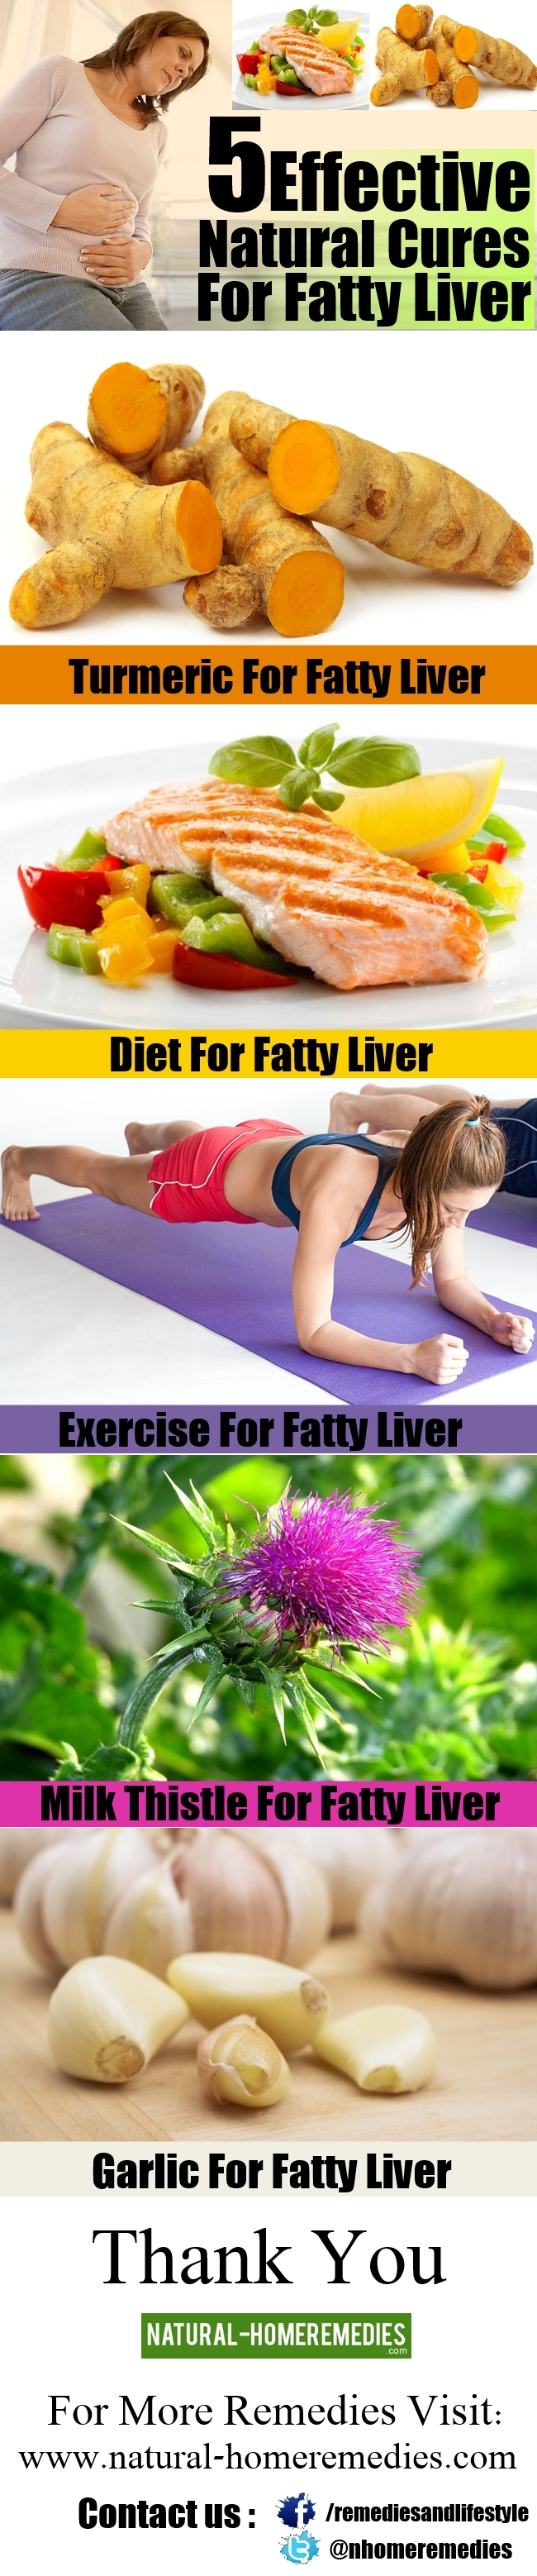 5 Effective Natural Cures For Fatty Liver